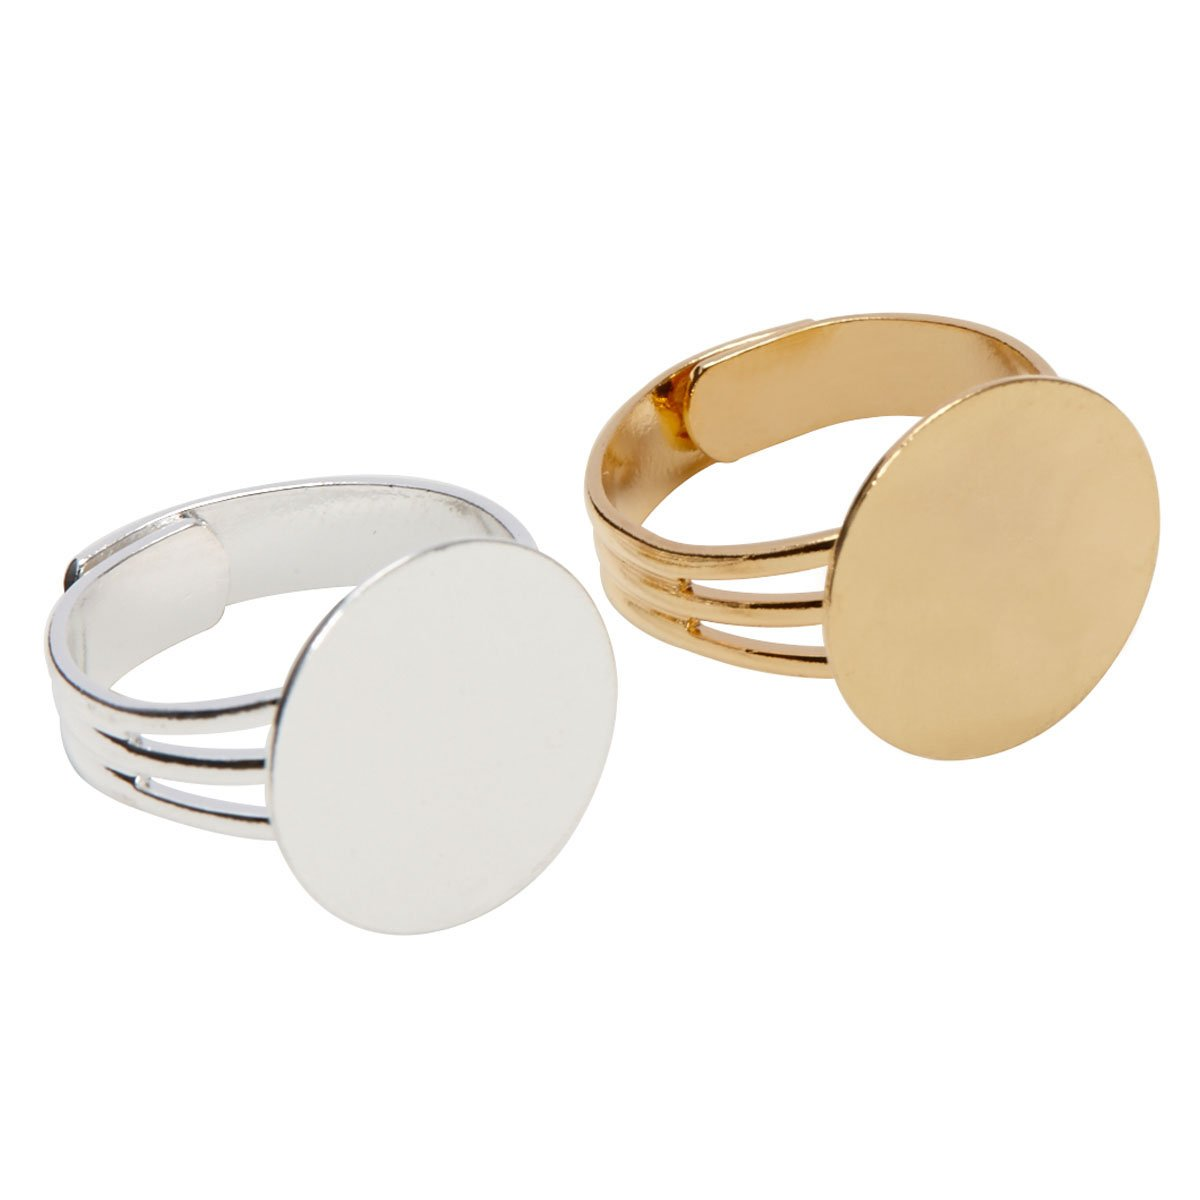 Gold and Silver Plated Ring Blanks with 16mm Flat Adjustable Ring Base 6 Pieces Gold and 6 Pieces Silver - 12 Blank Rings Total